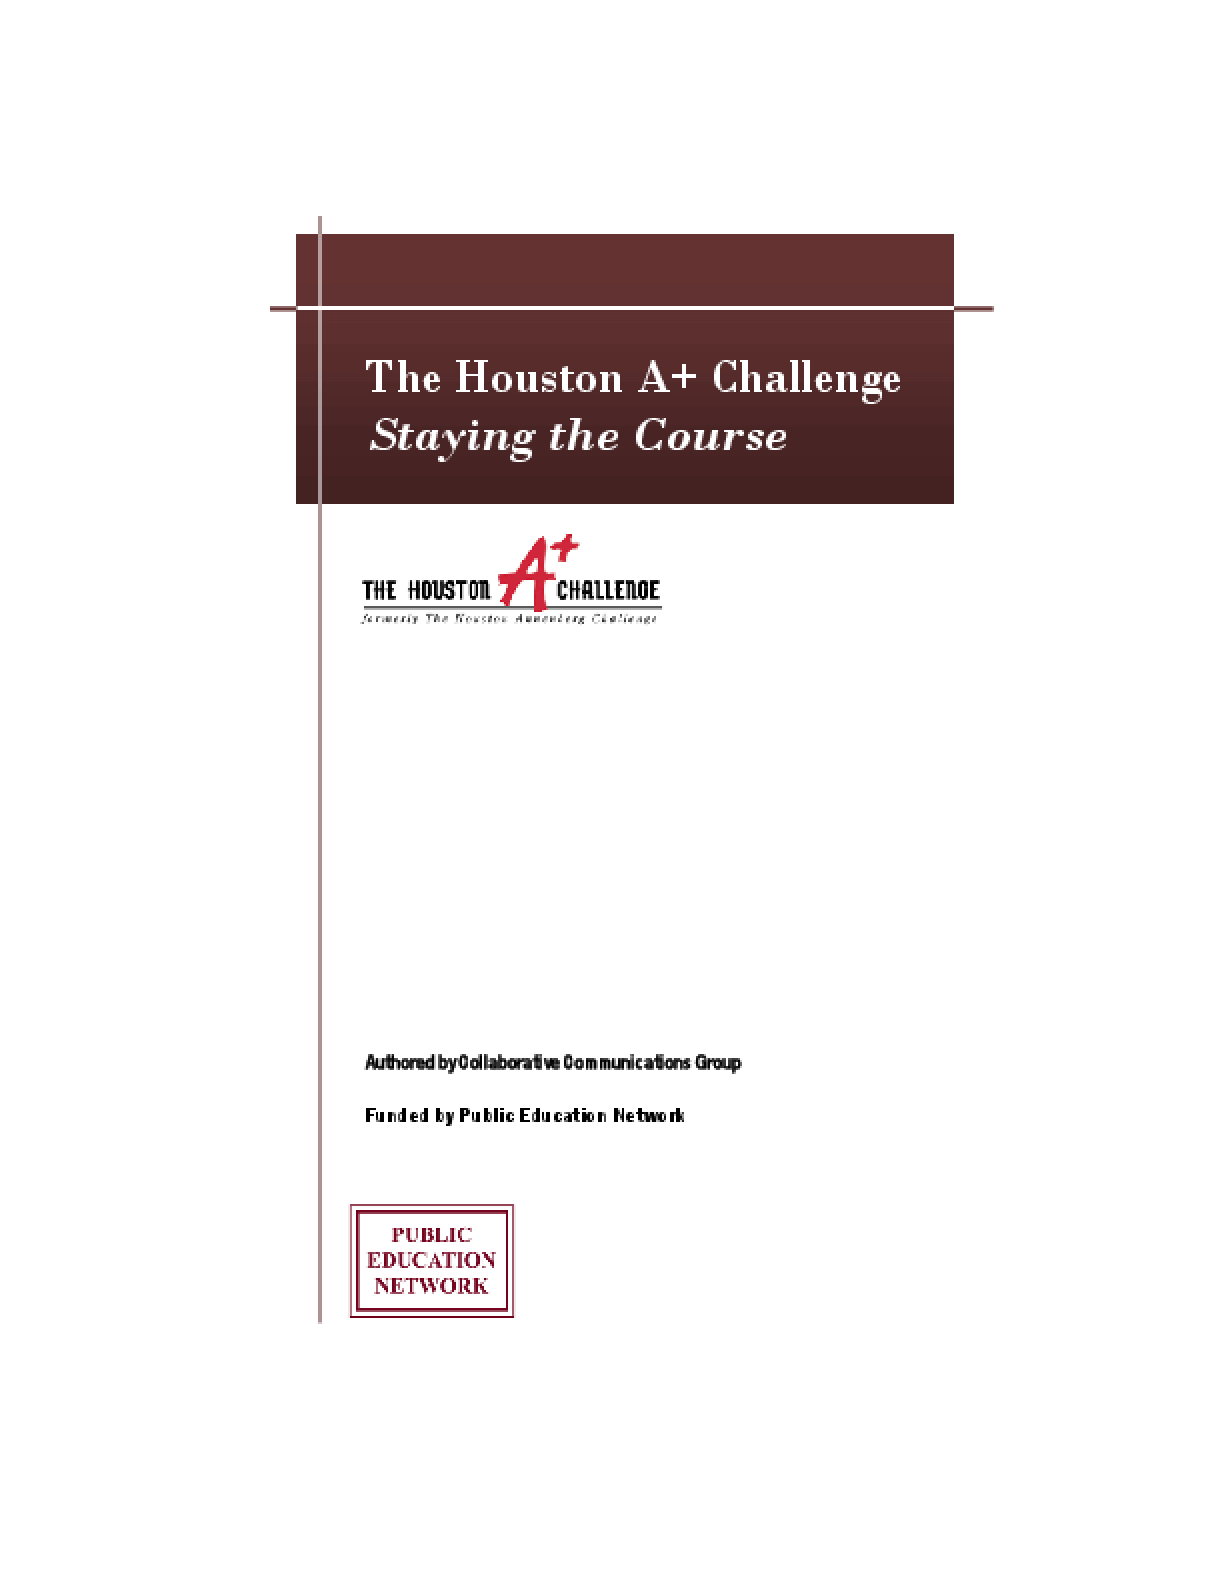 The Houston A+ Challenge: Staying the Course